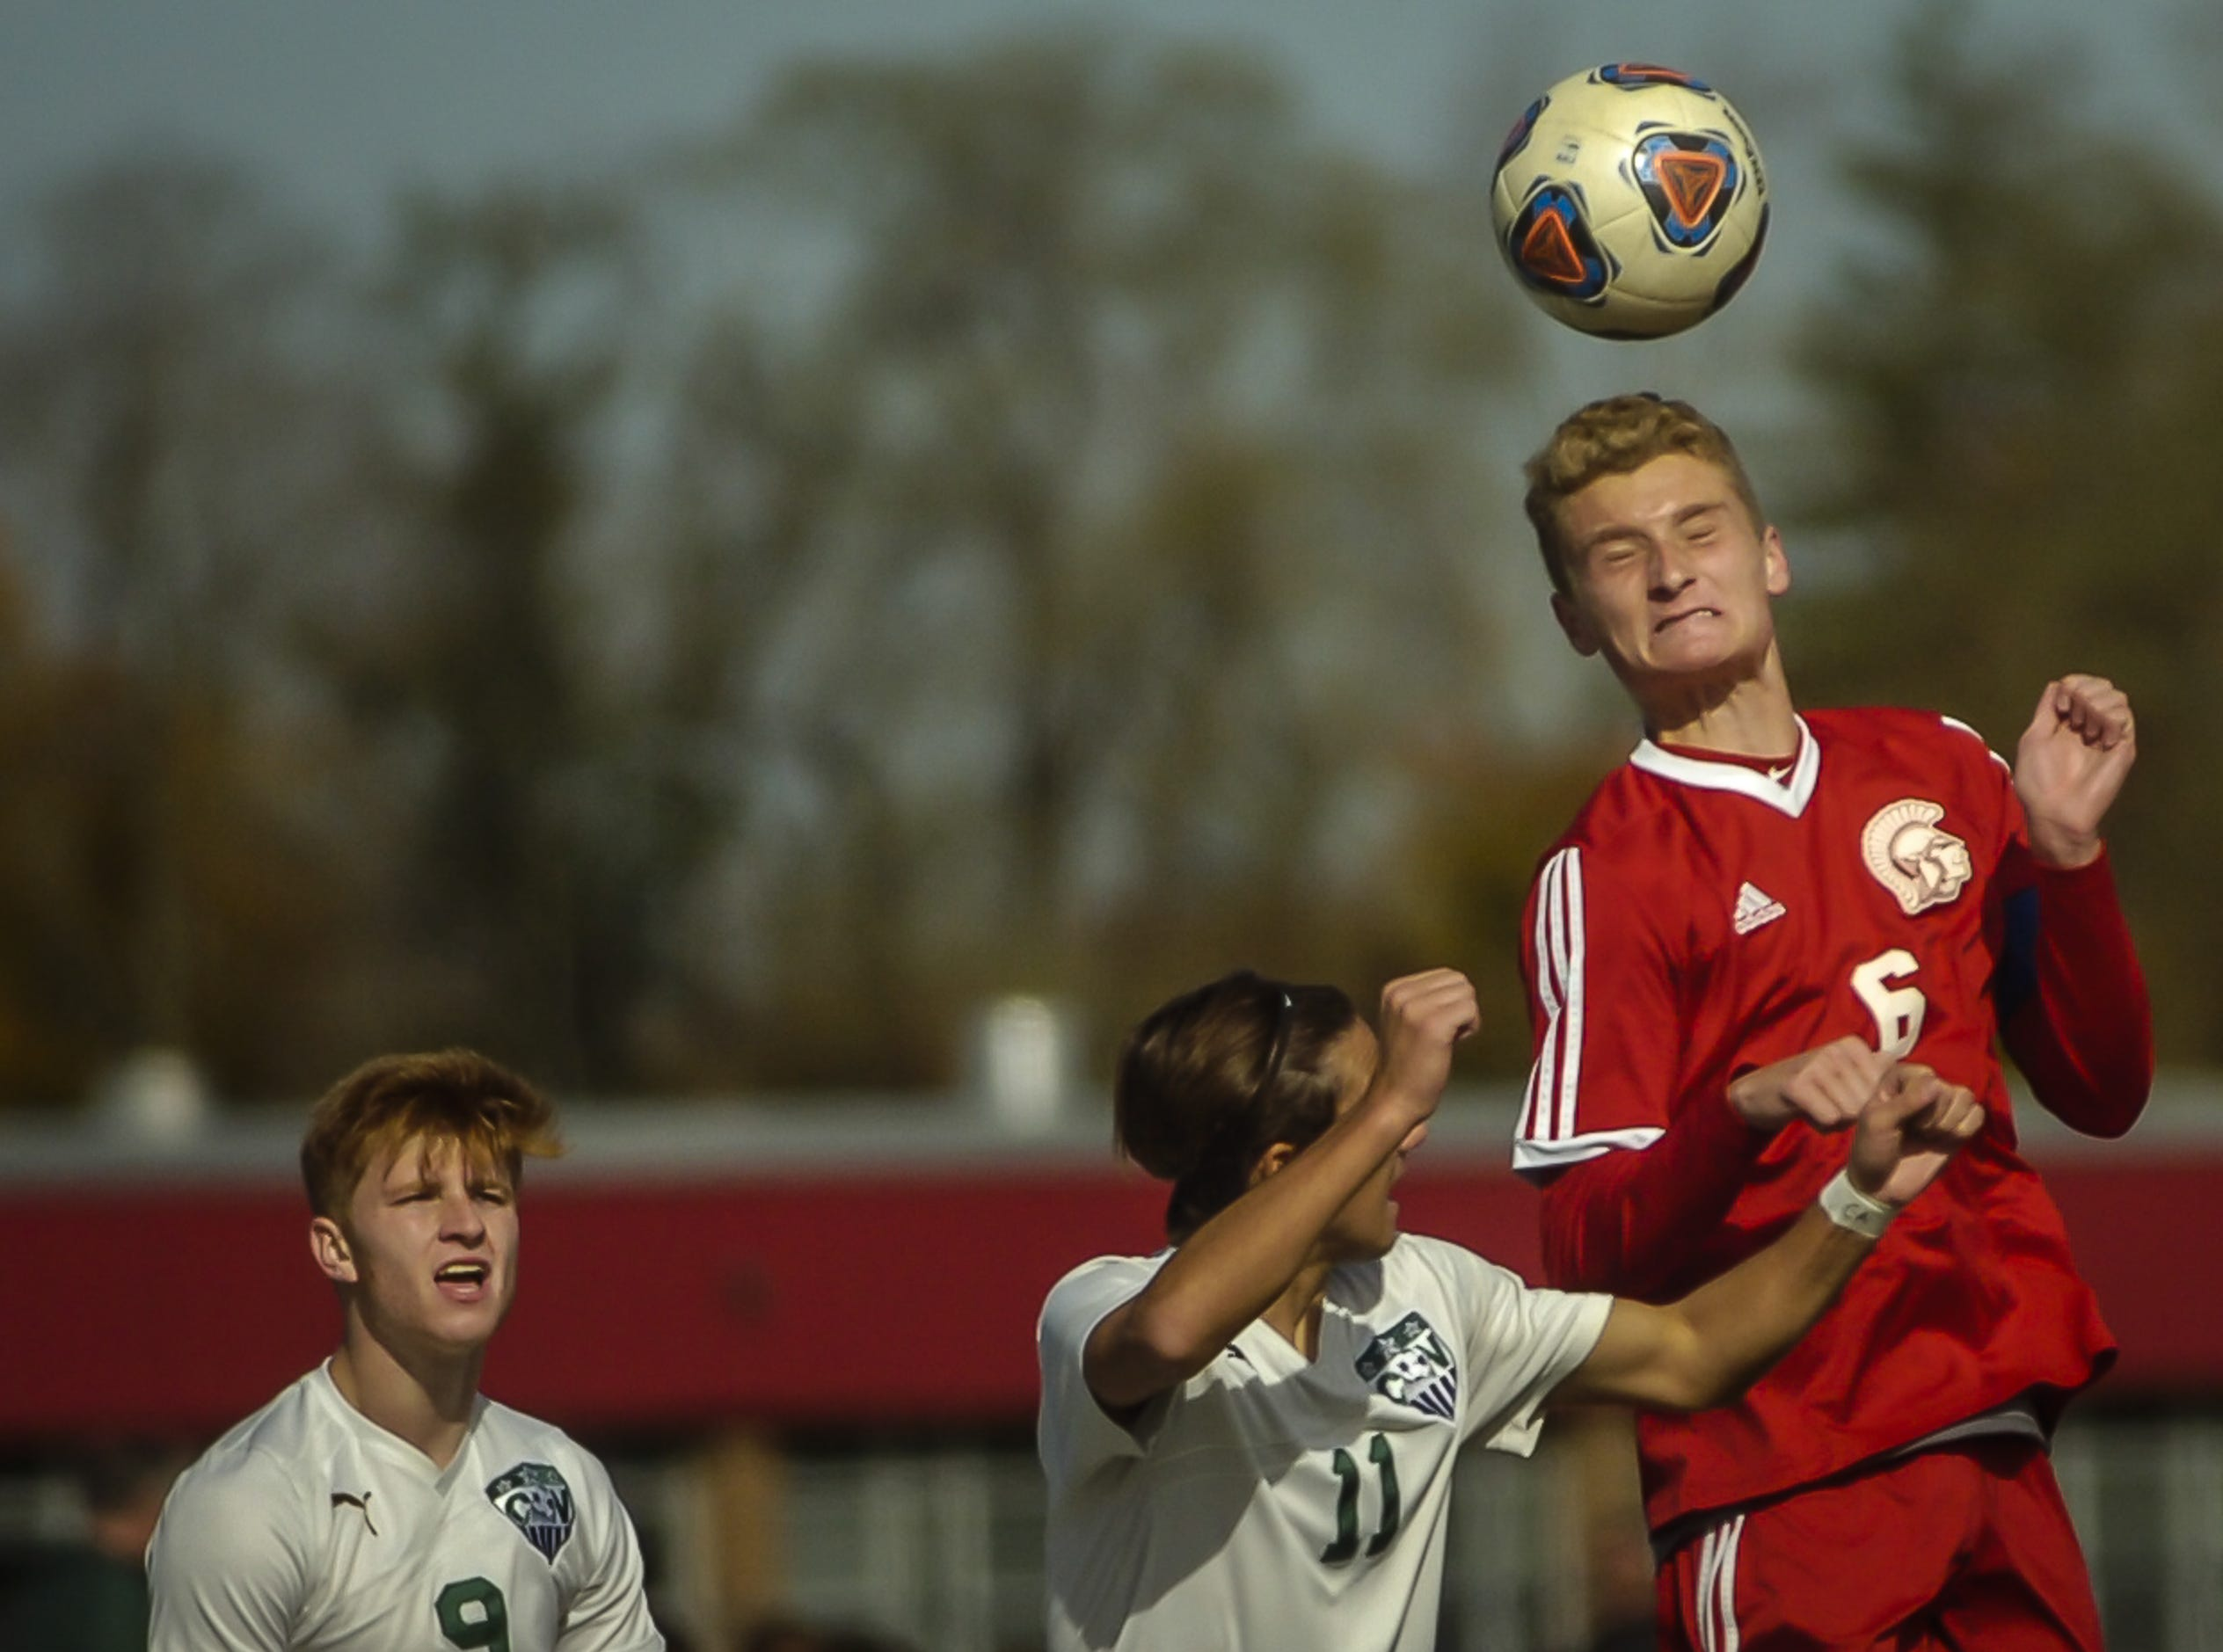 NJSIAA Central Group III boys soccer final, Ocean Township and Colts Neck at Ocean Township High School on Nov.8, 2018.